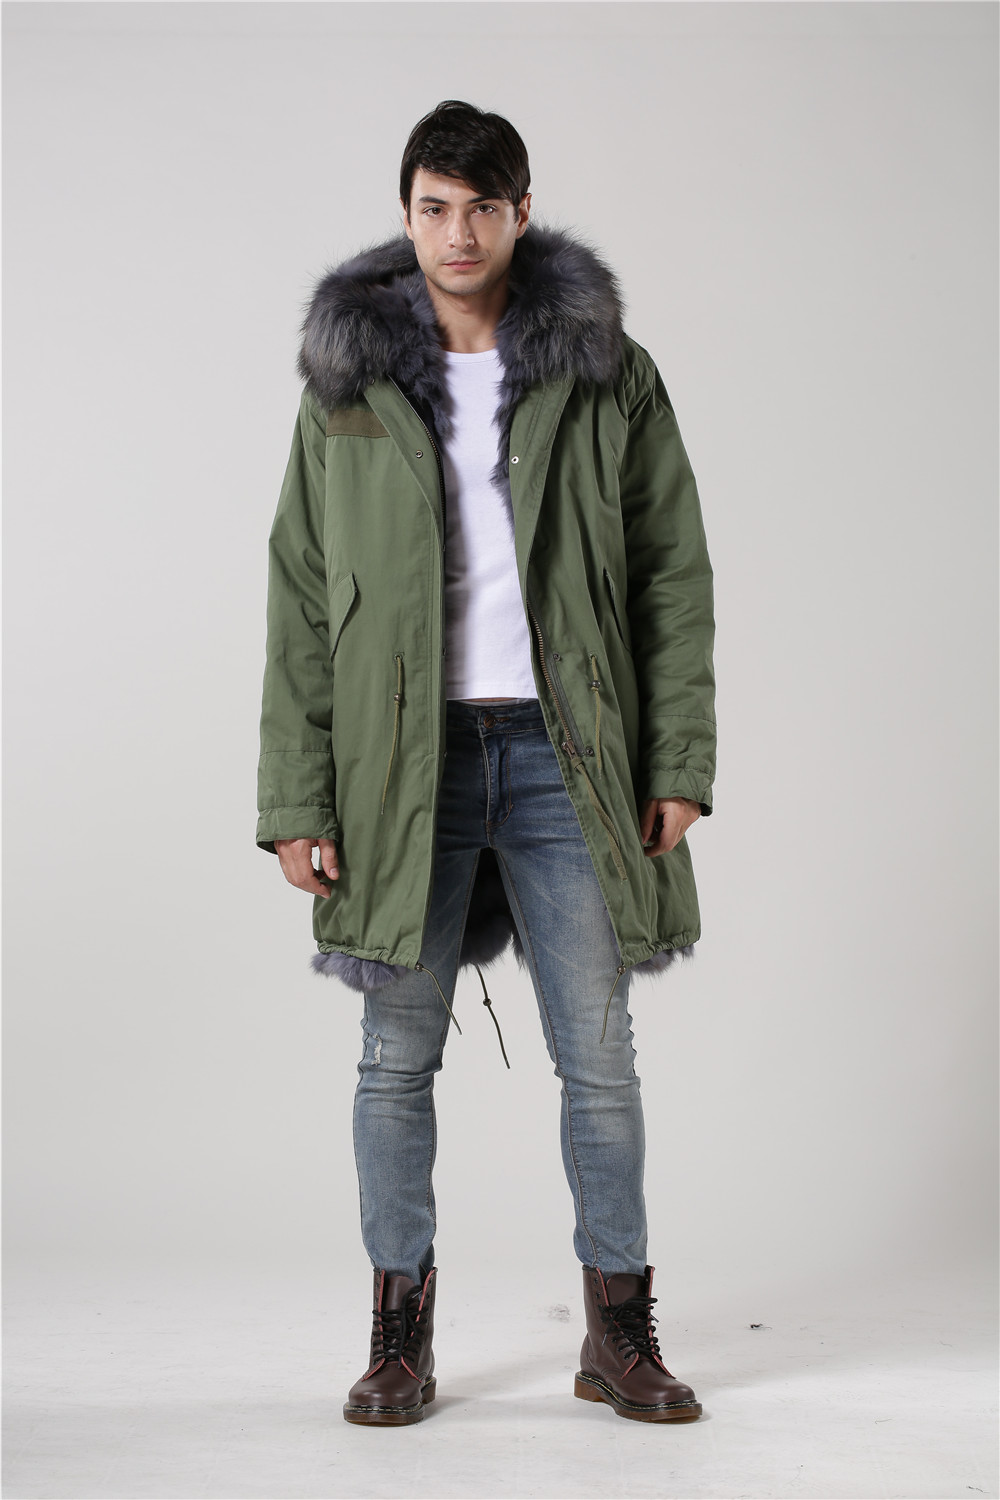 Buy Mens Parka Jacket | Outdoor Jacket